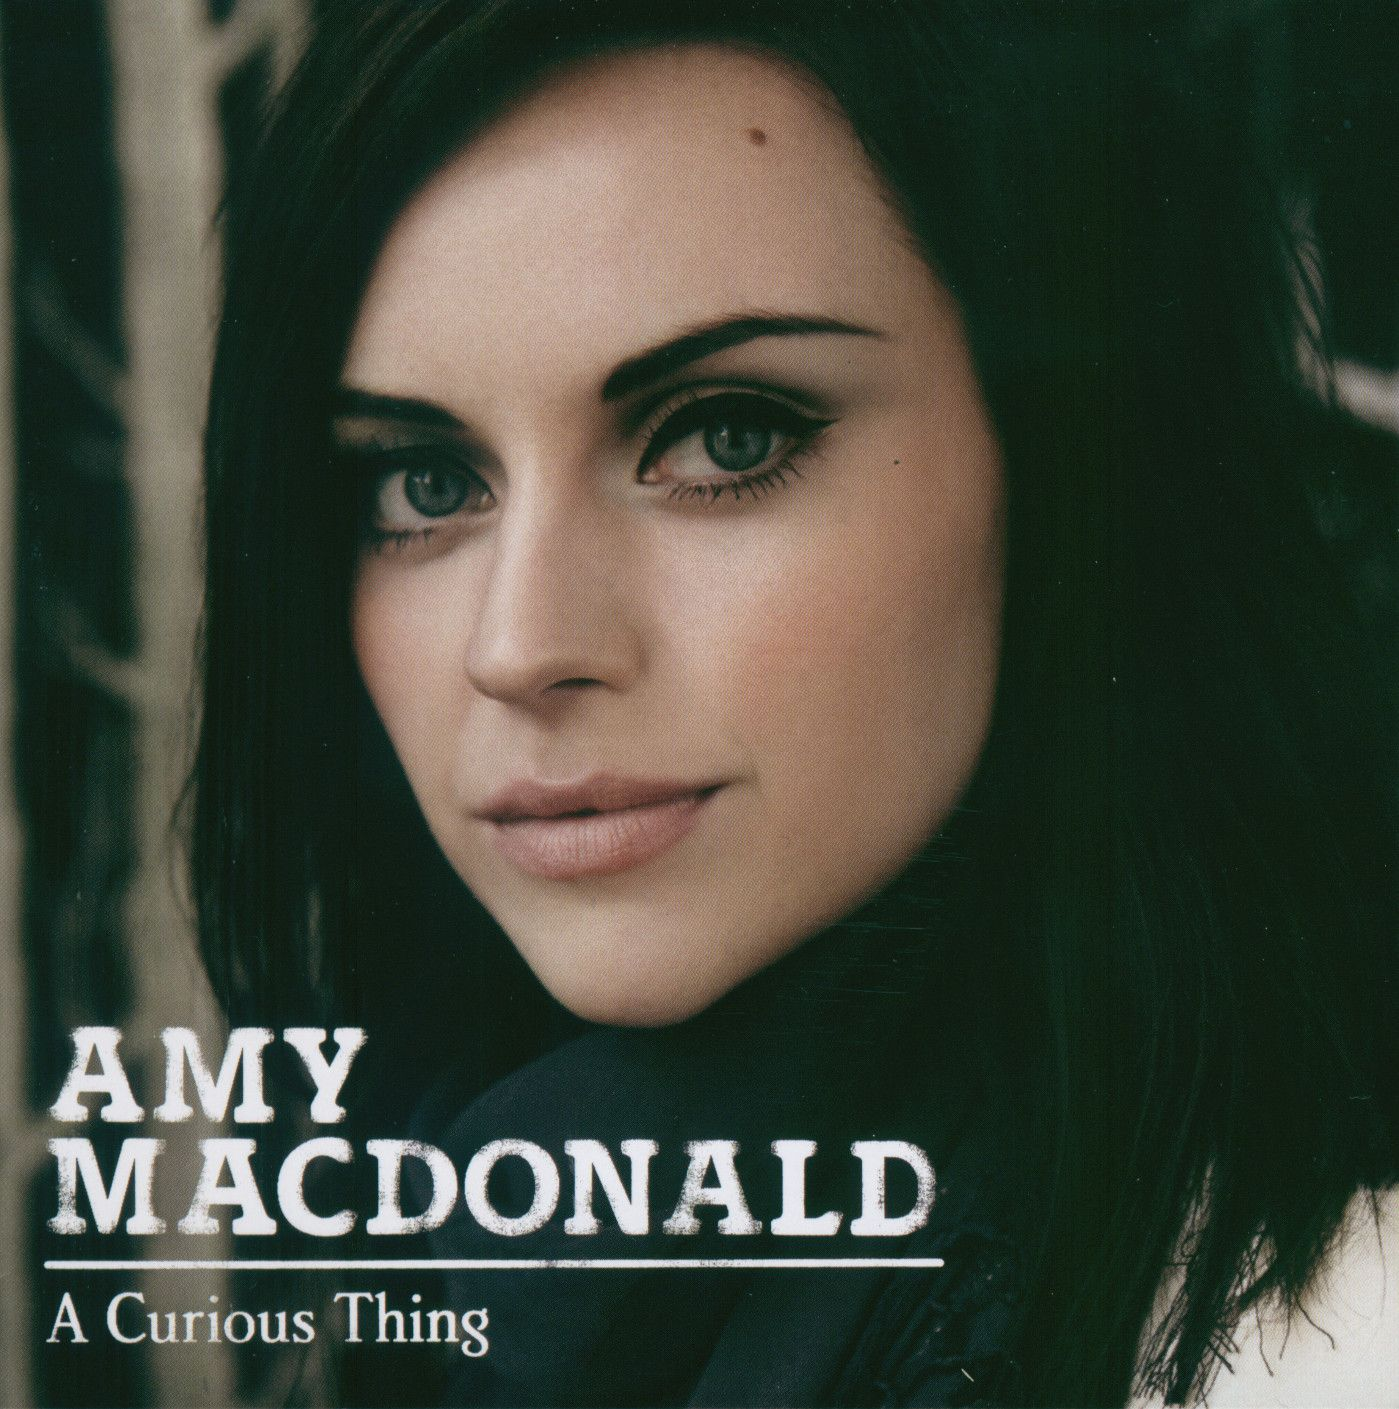 Amy Macdonald - A Curious Thing album cover